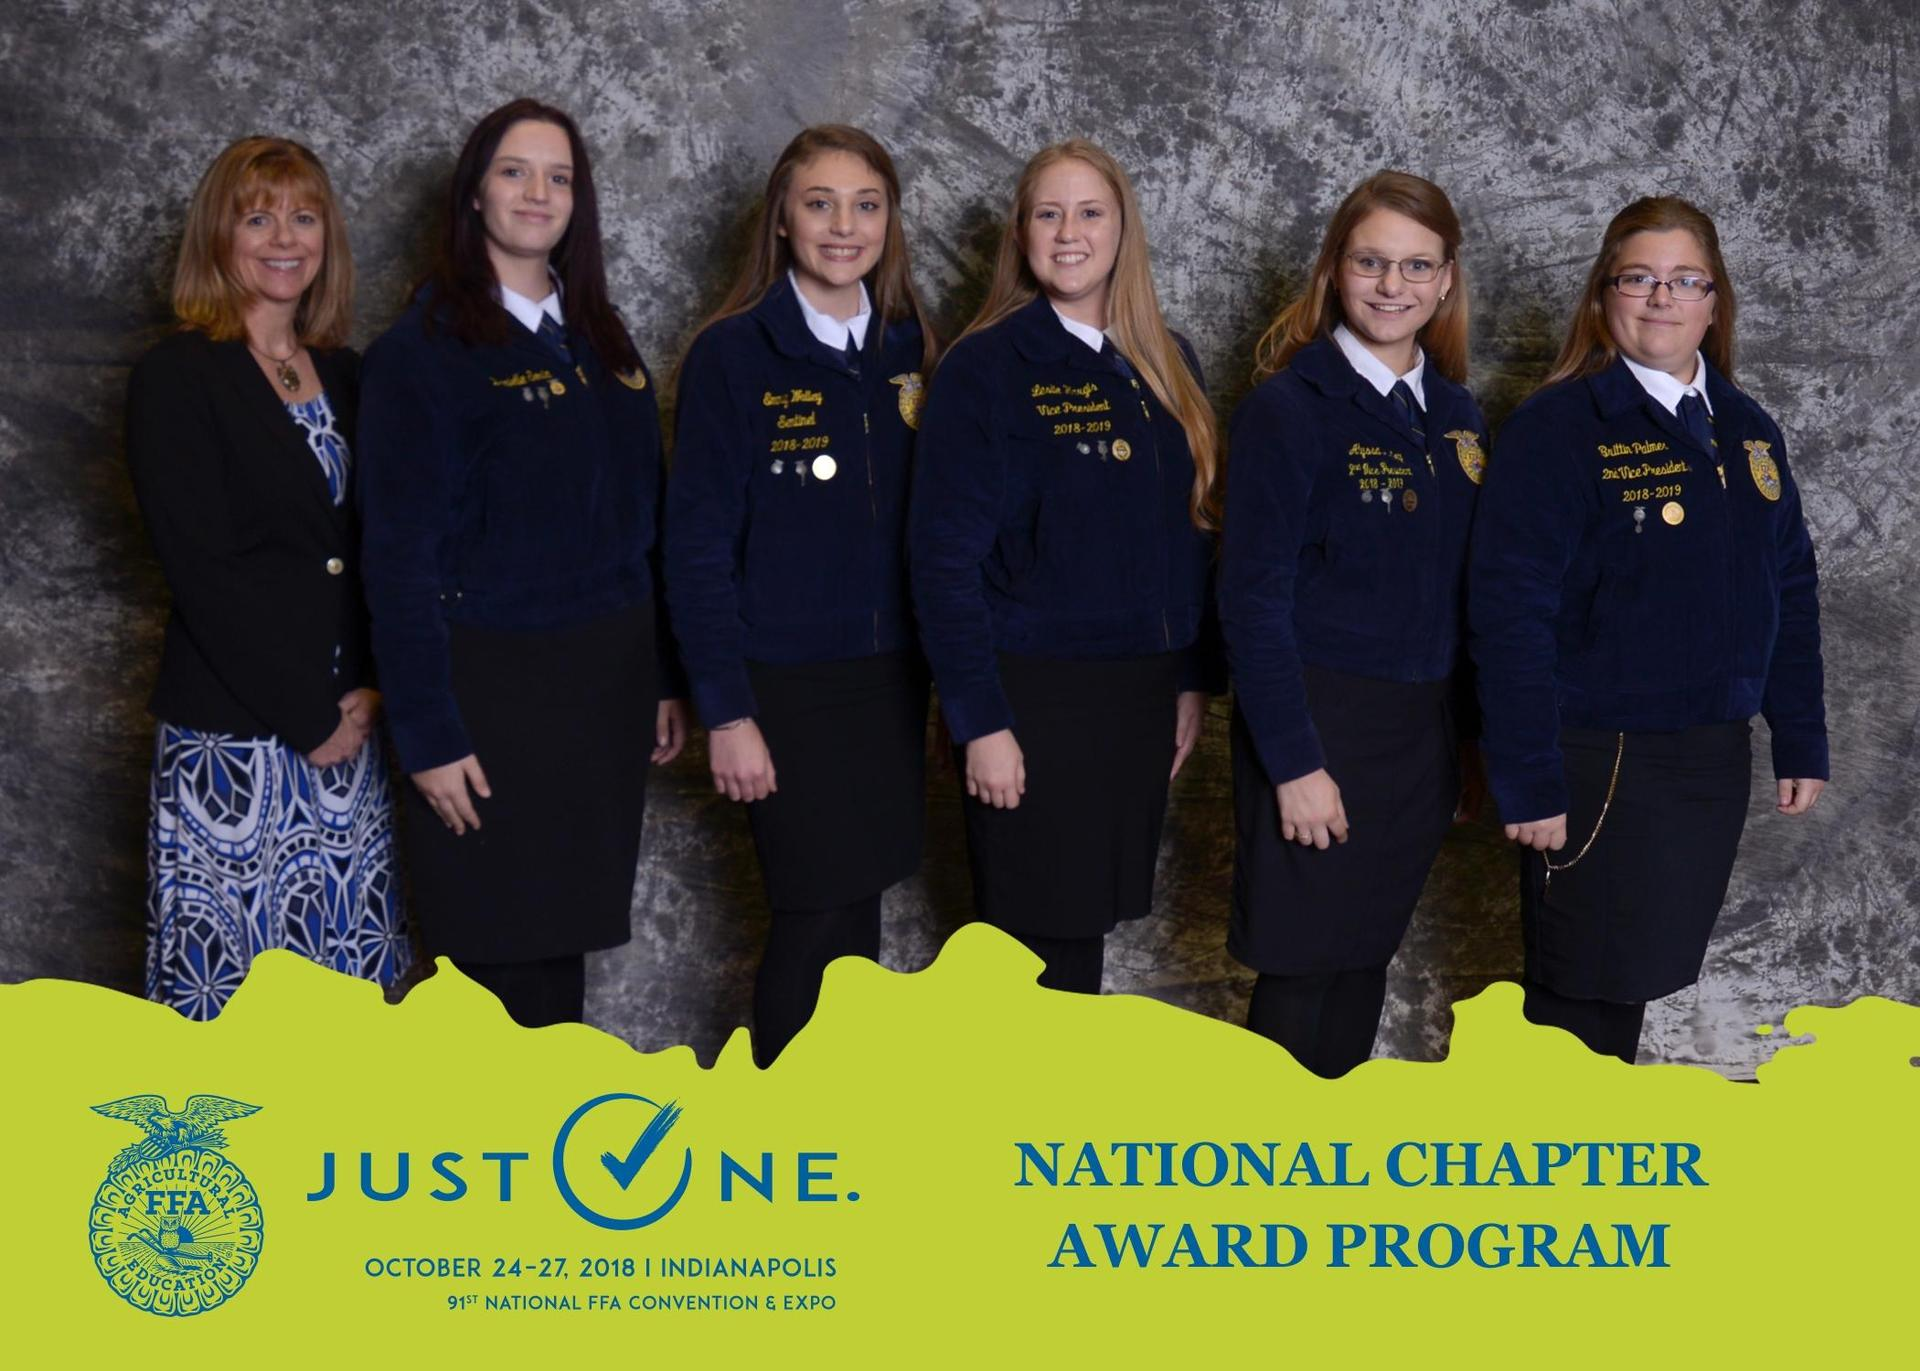 3-Star Gold National Chapter Award